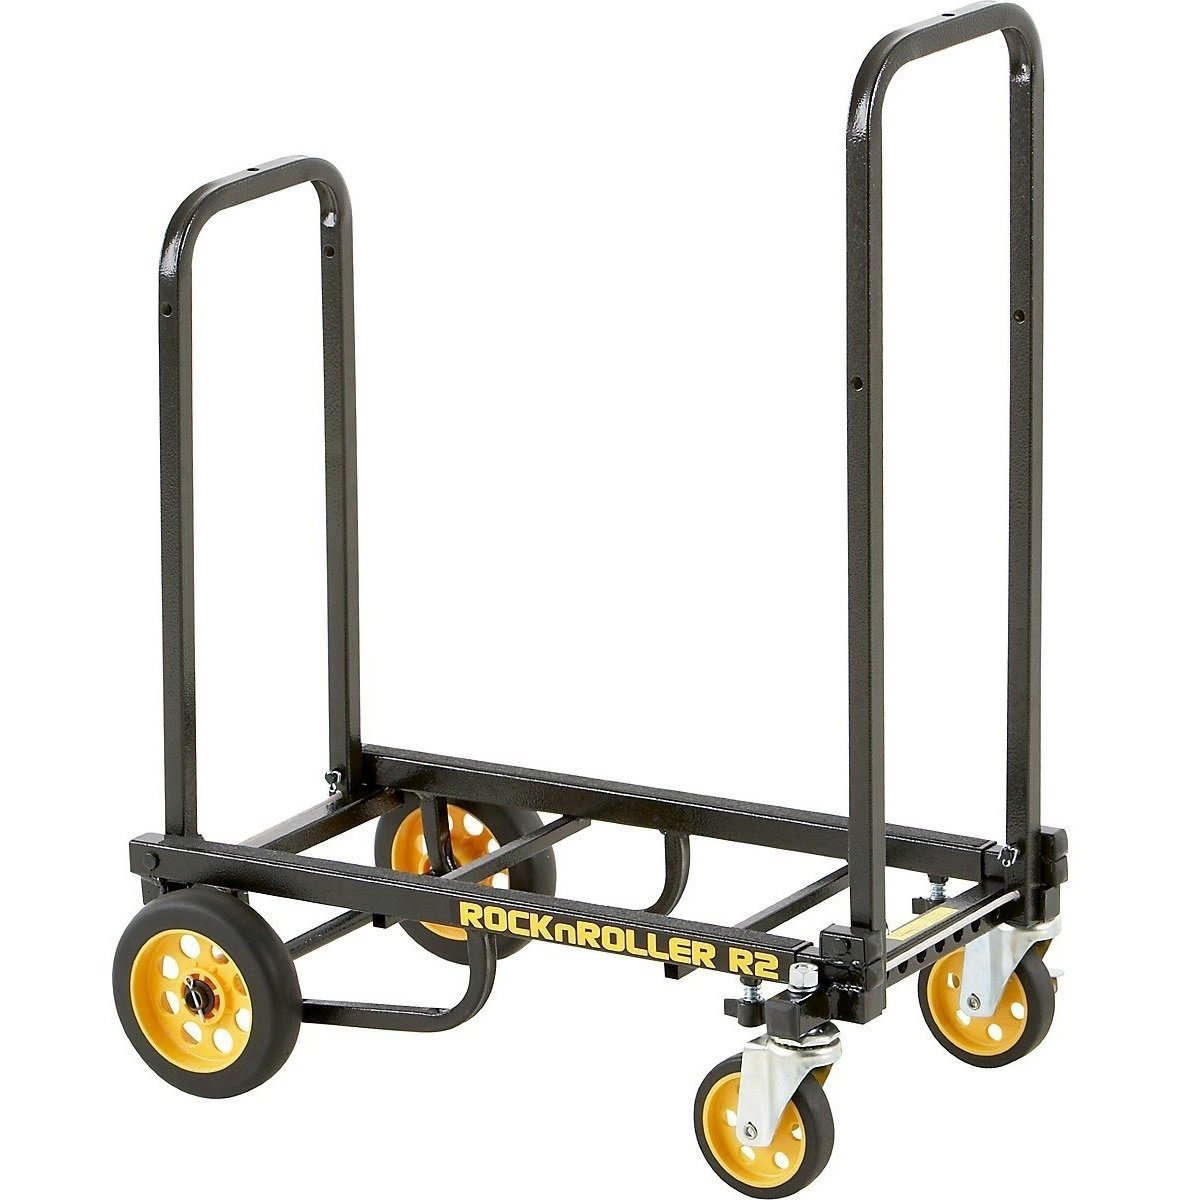 Cart in 26 inch configuration.